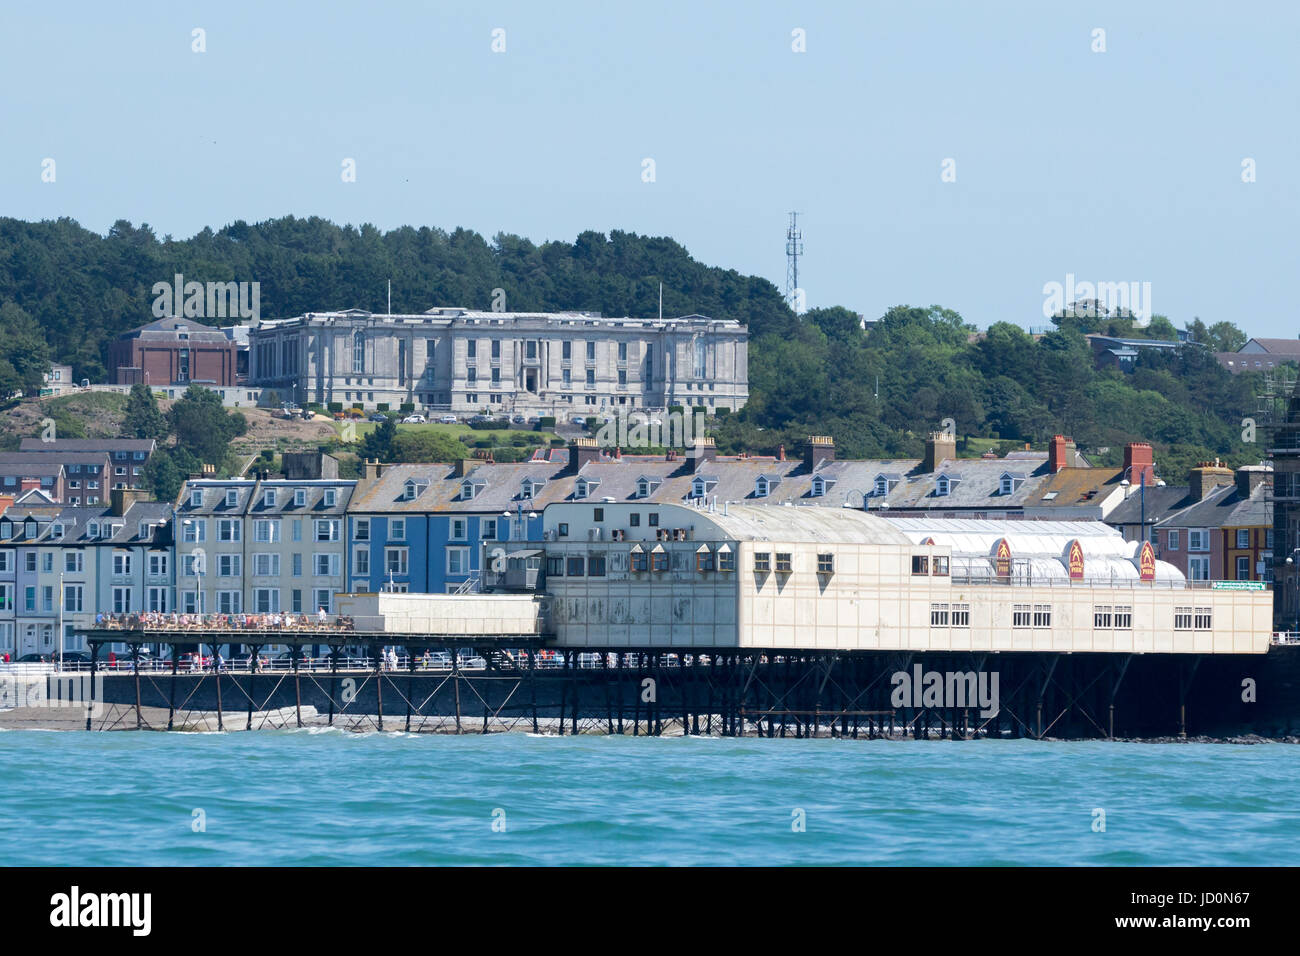 A view of Aberystwyth seafront pier with the National library of Wales in the background - Stock Image